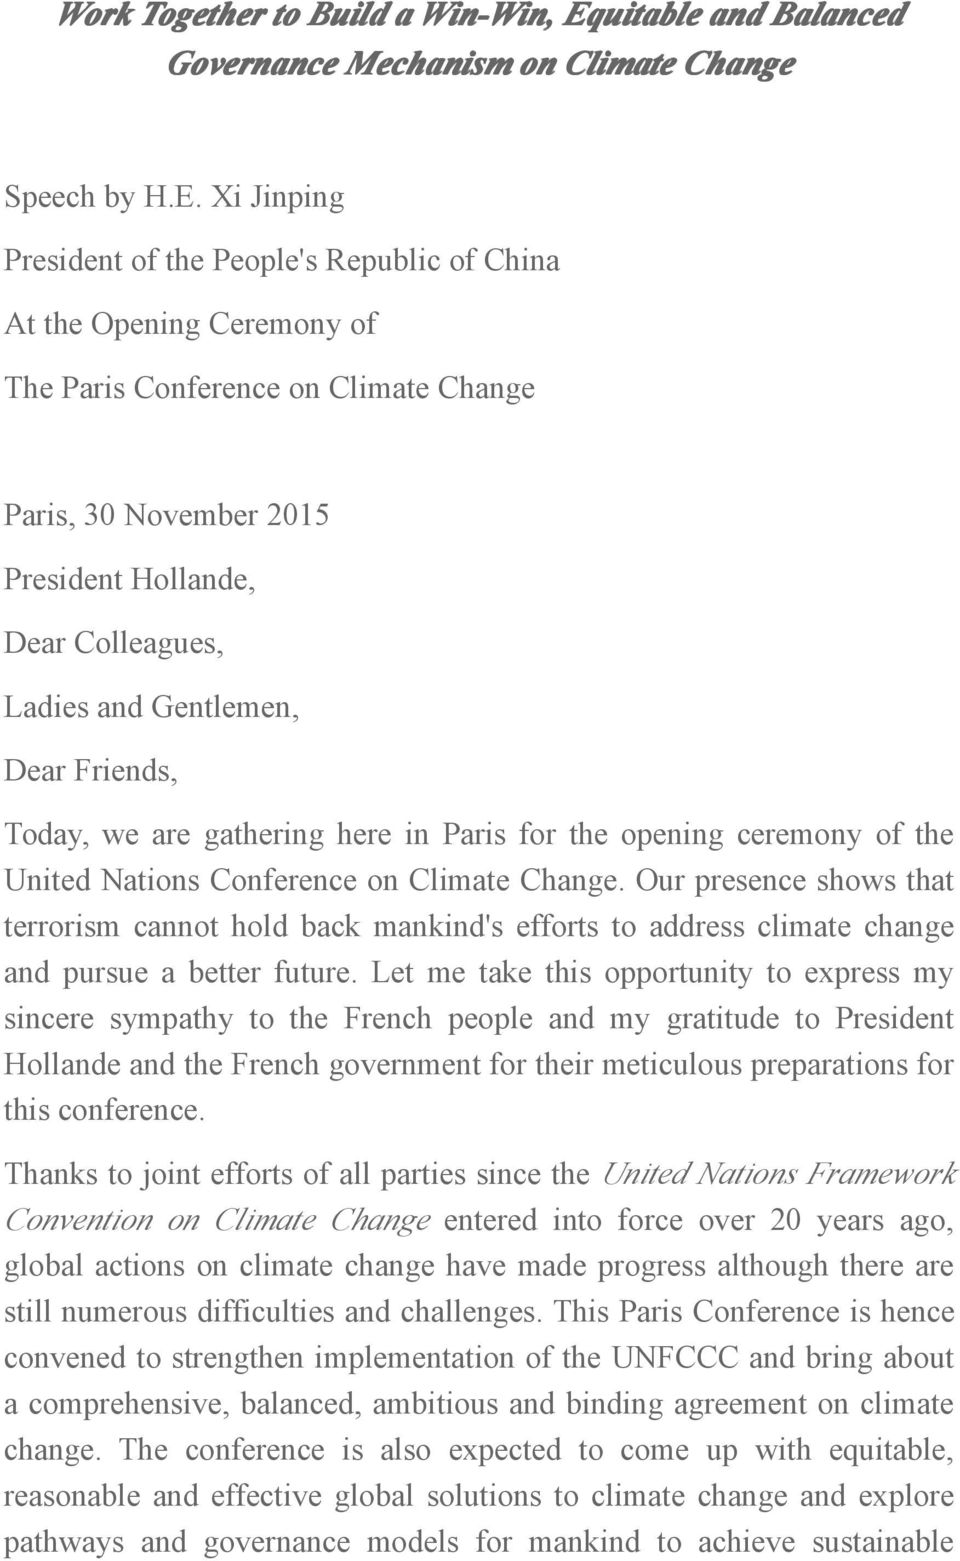 Xi Jinping President of the People's Republic of China At the Opening Ceremony of The Paris Conference on Climate Change Paris, 30 November 2015 President Hollande, Dear Colleagues, Dear Friends,